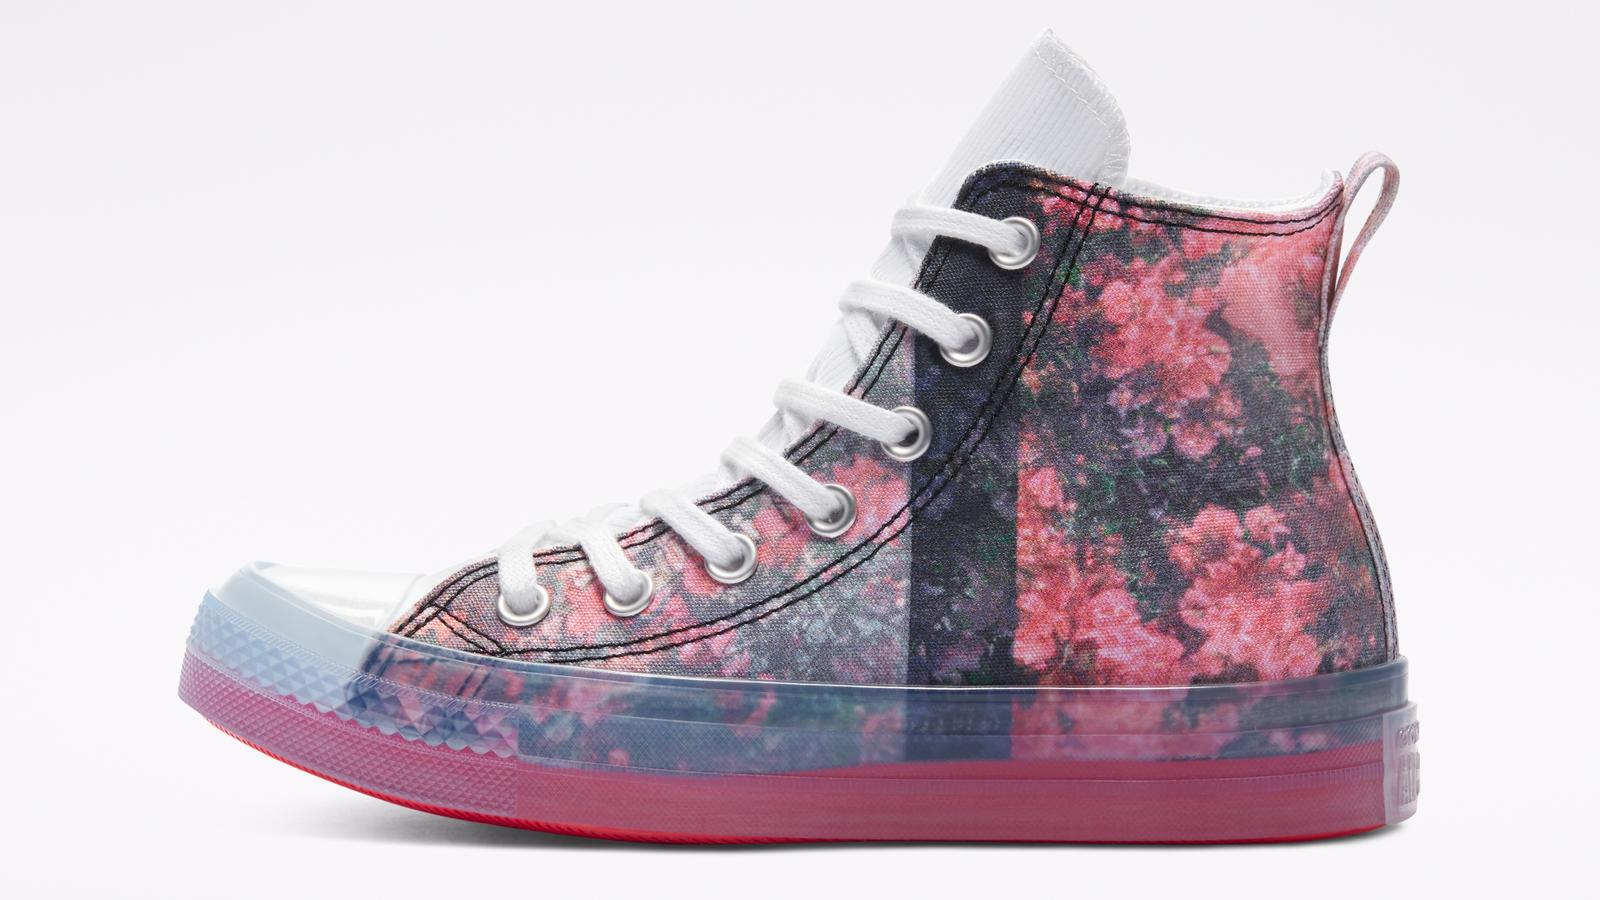 Converse x Shaniqwa Jarvis Chuck Taylor All Star CX and Apparel 2